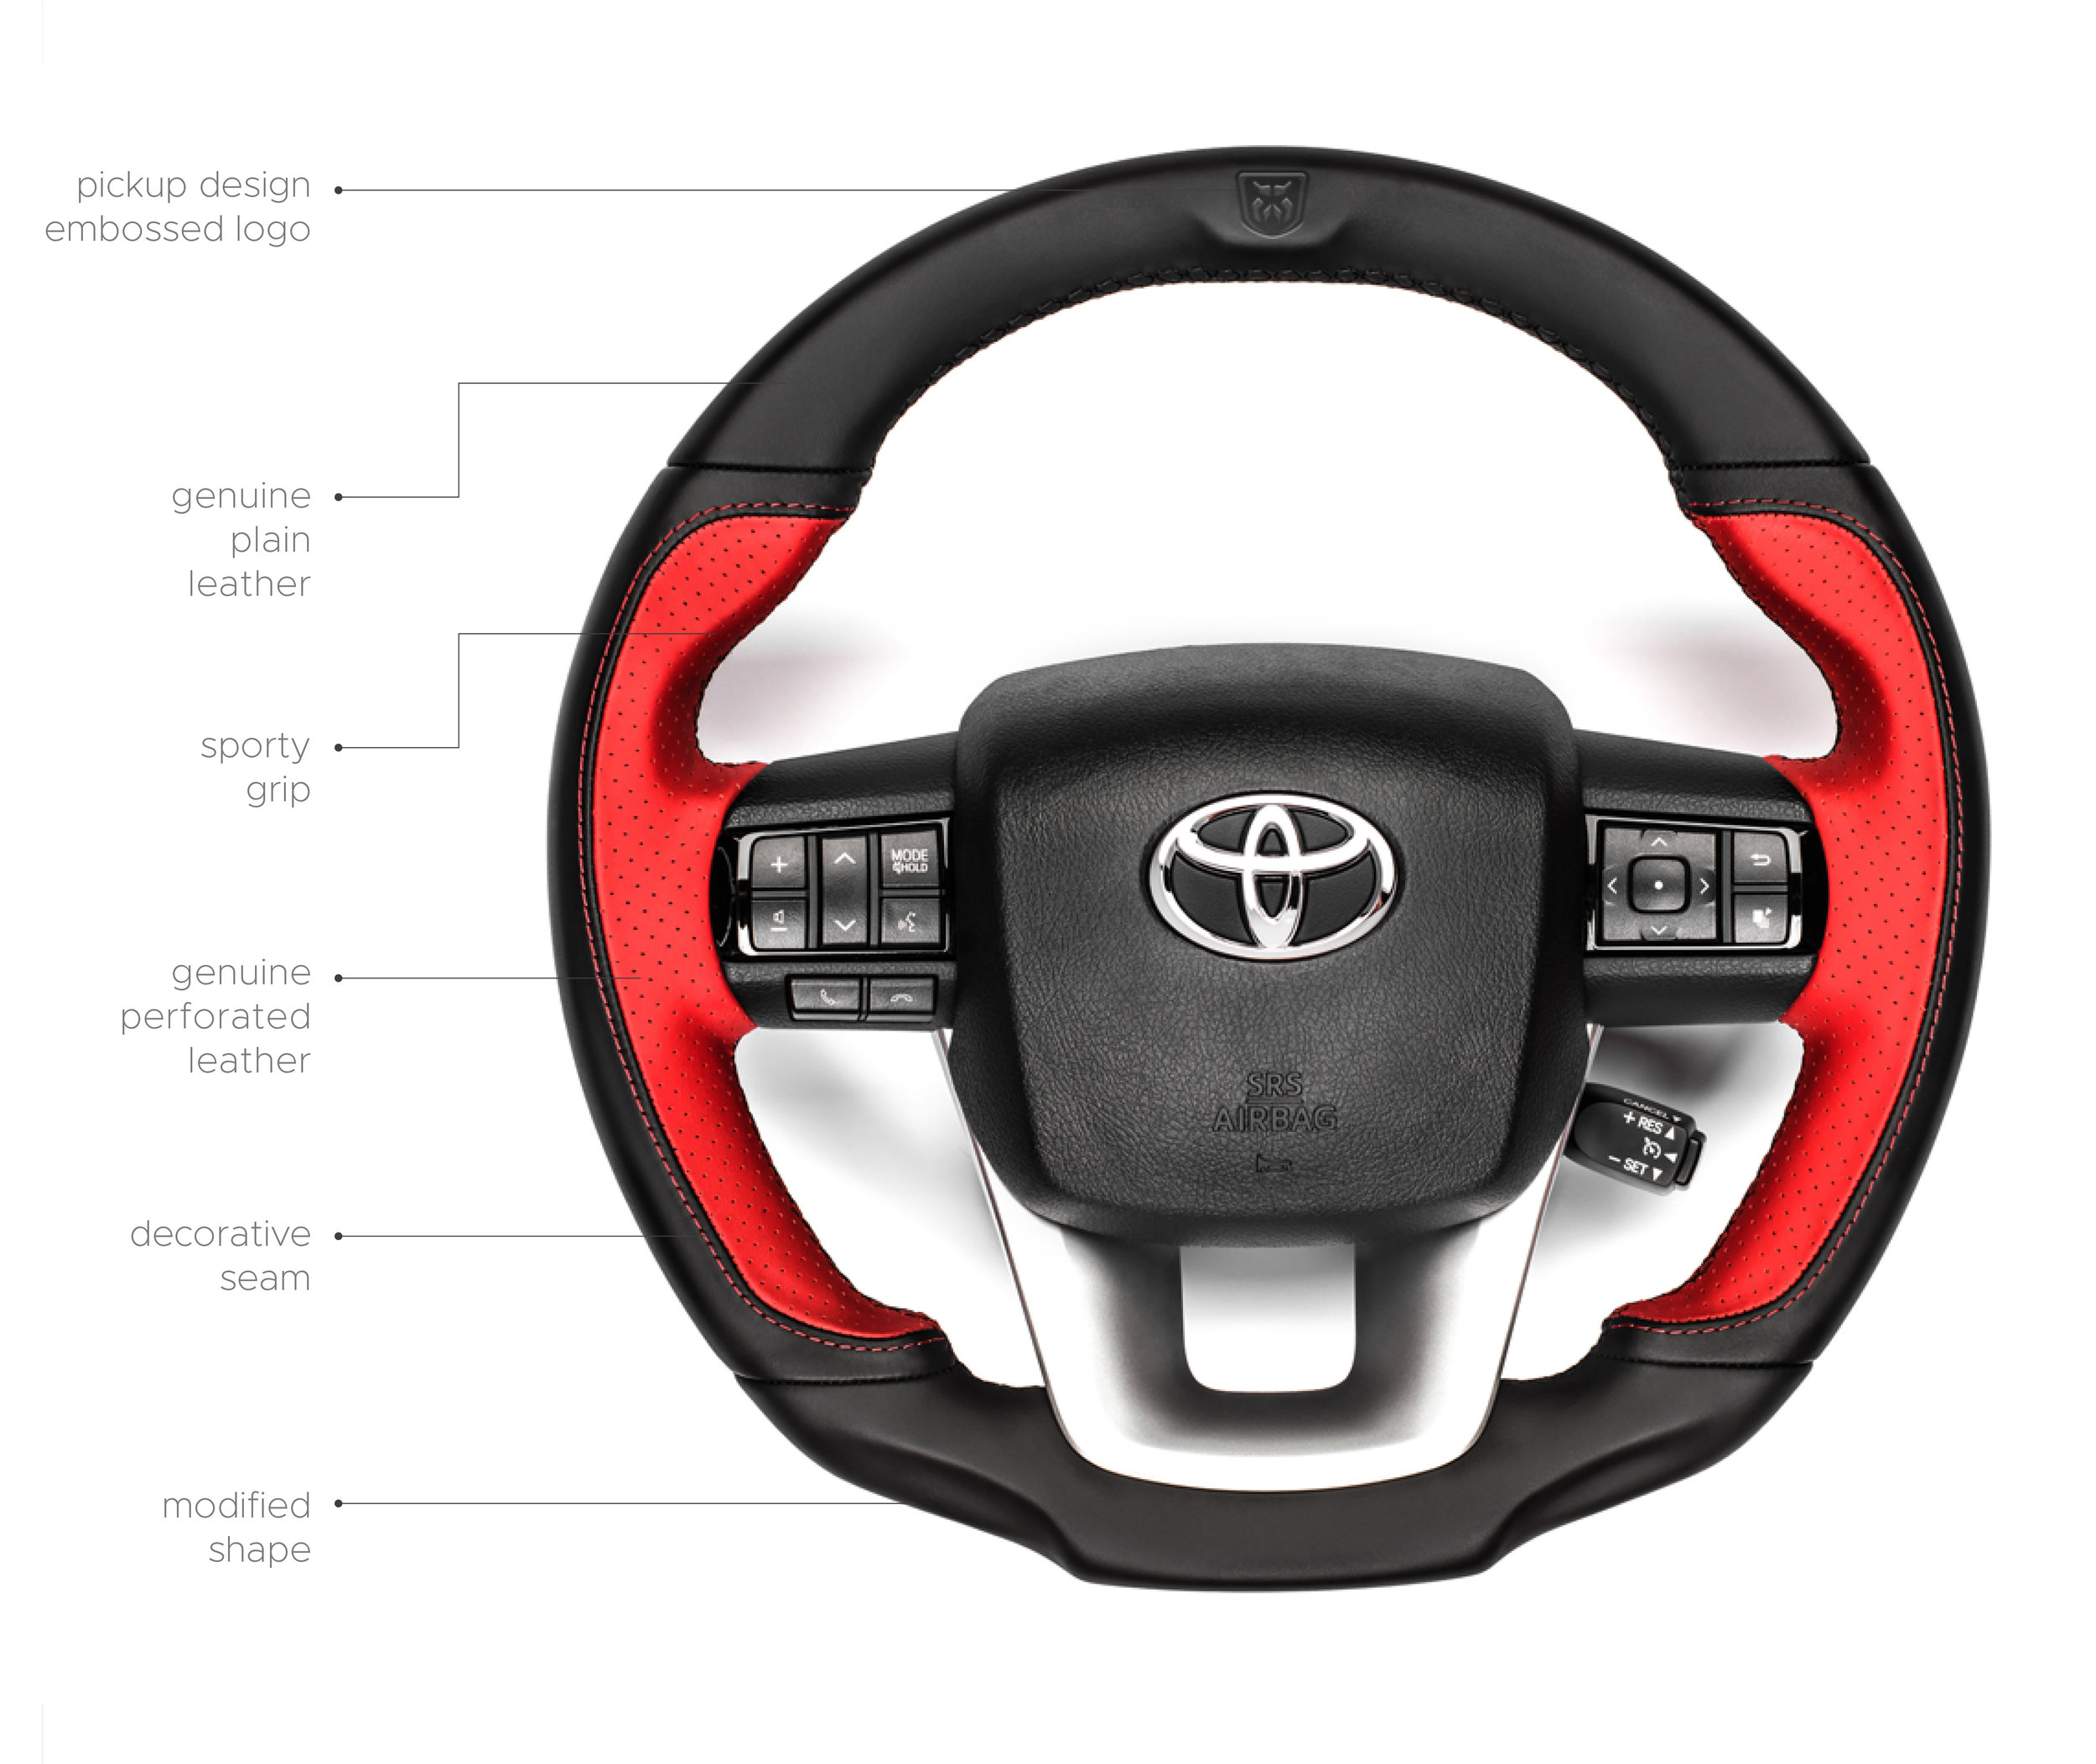 Steering wheel - The Hilly has a modified, sporty and comfortable steering wheel.Its new shape ensures maximum grip,and the leather applied makes thedriving experience a real pleasure